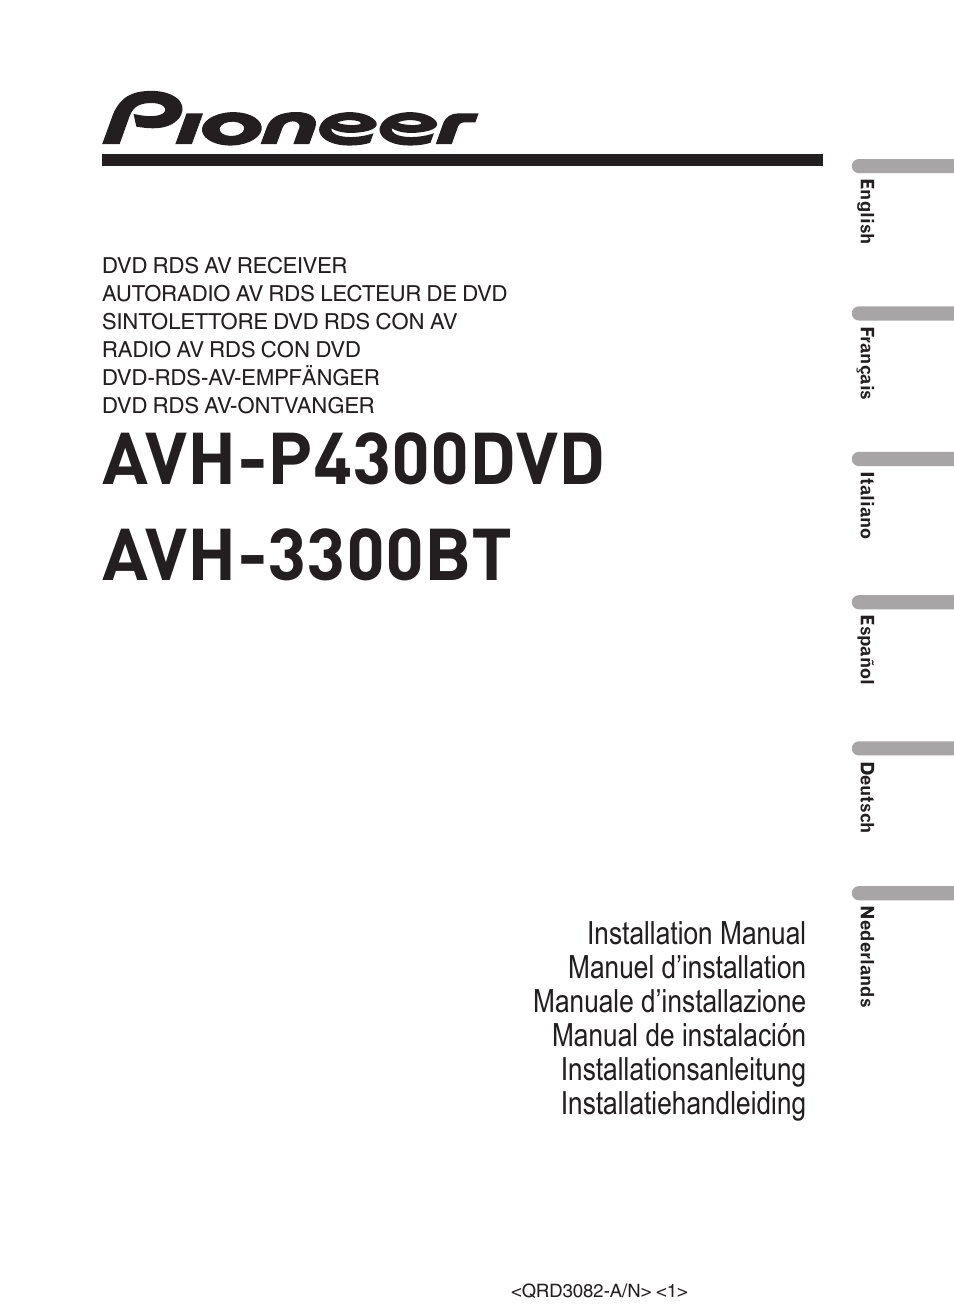 Pioneer Avh P4300dvd User Manual